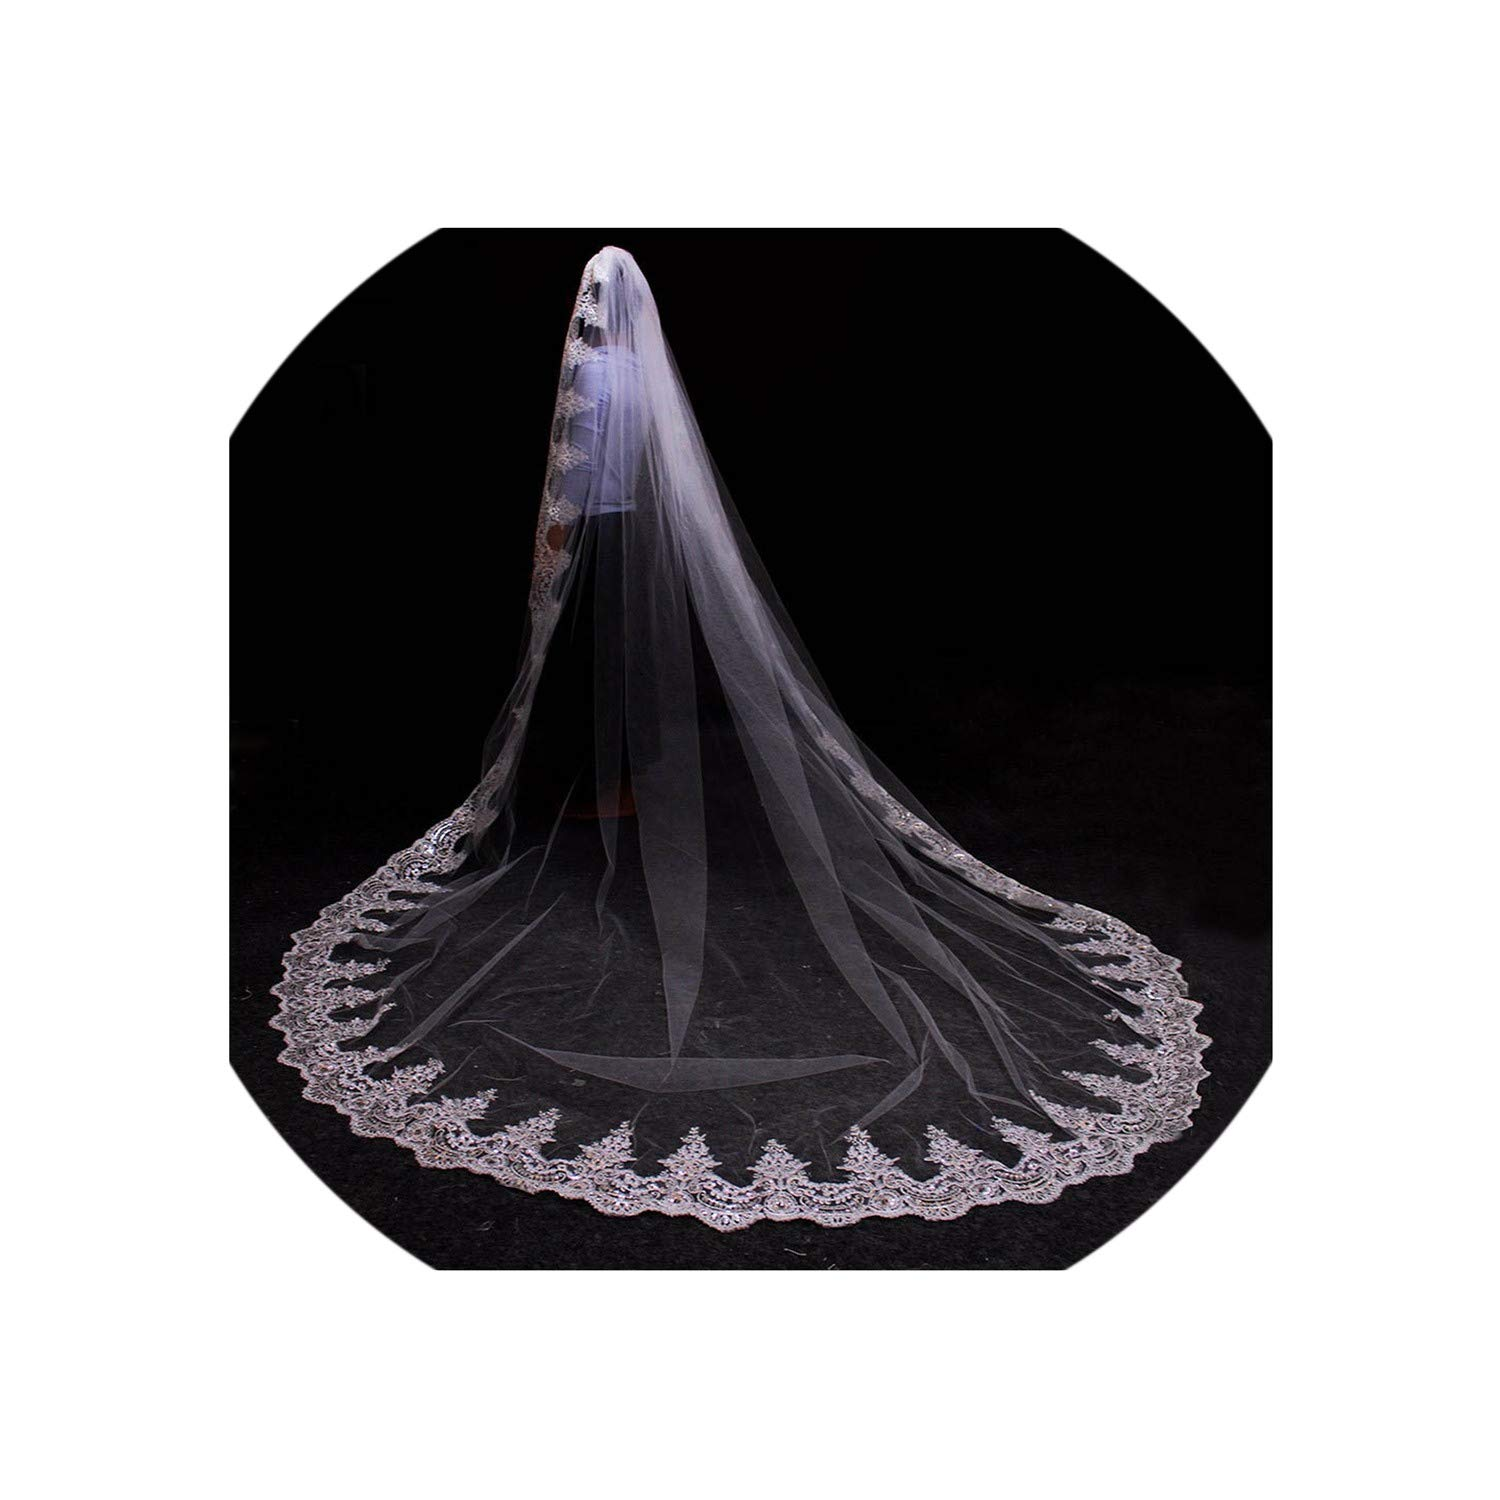 White 3 Meters White Ivory Cathedral Wedding Veils Long Lace Edge Bridal Veil With Comb Wedding Accessories Bride,White,500Cm